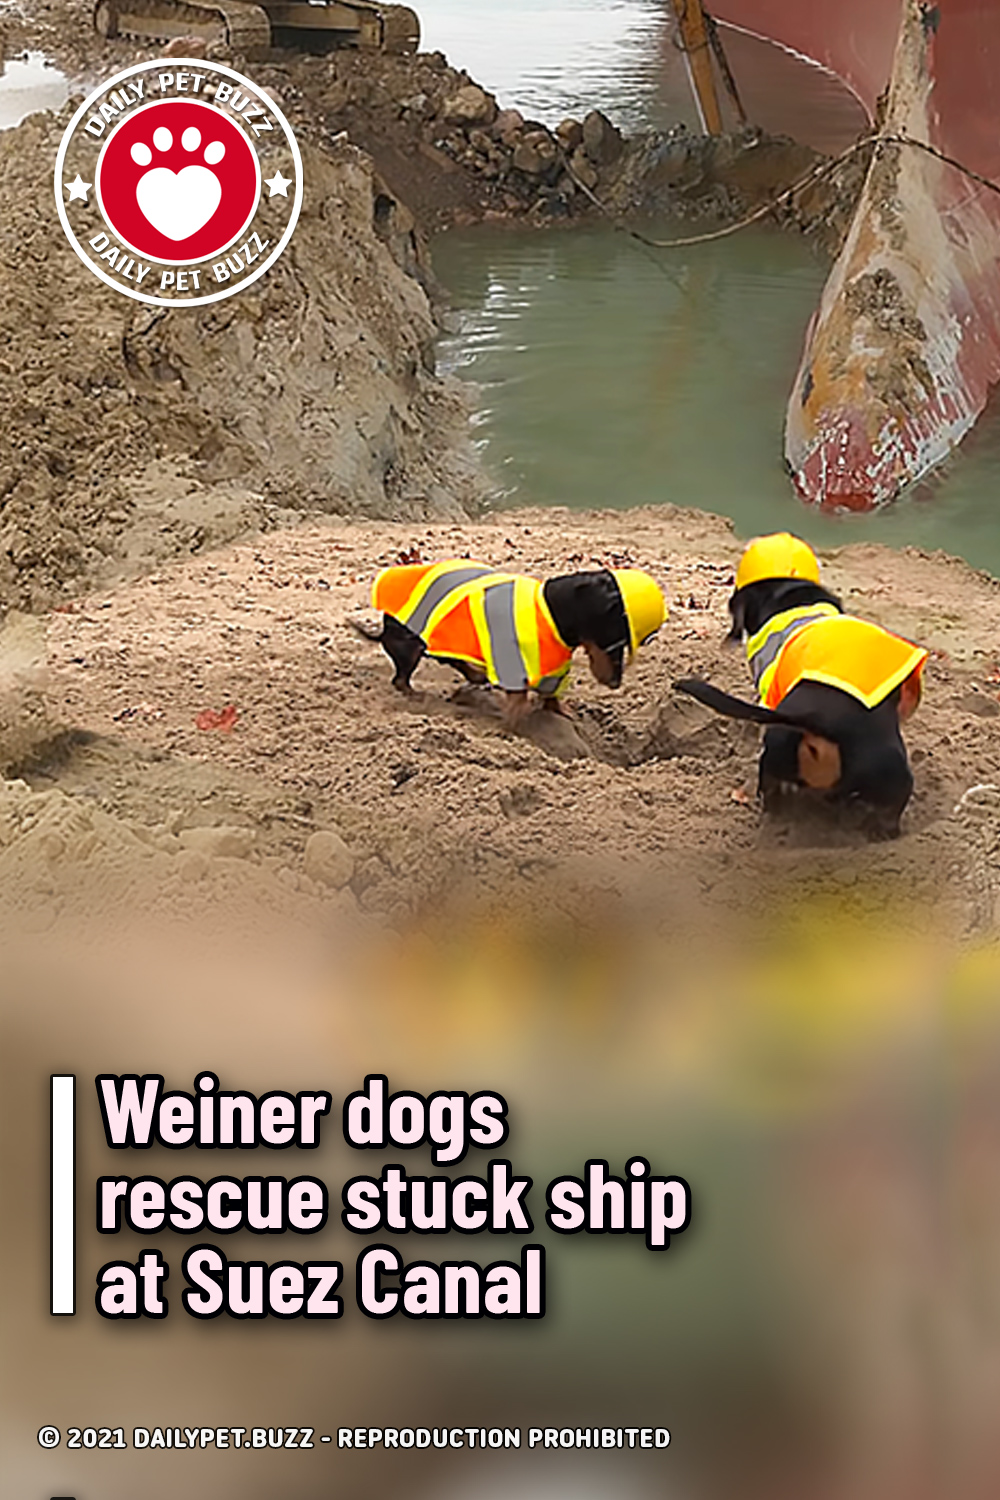 Weiner dogs rescue stuck ship at Suez Canal